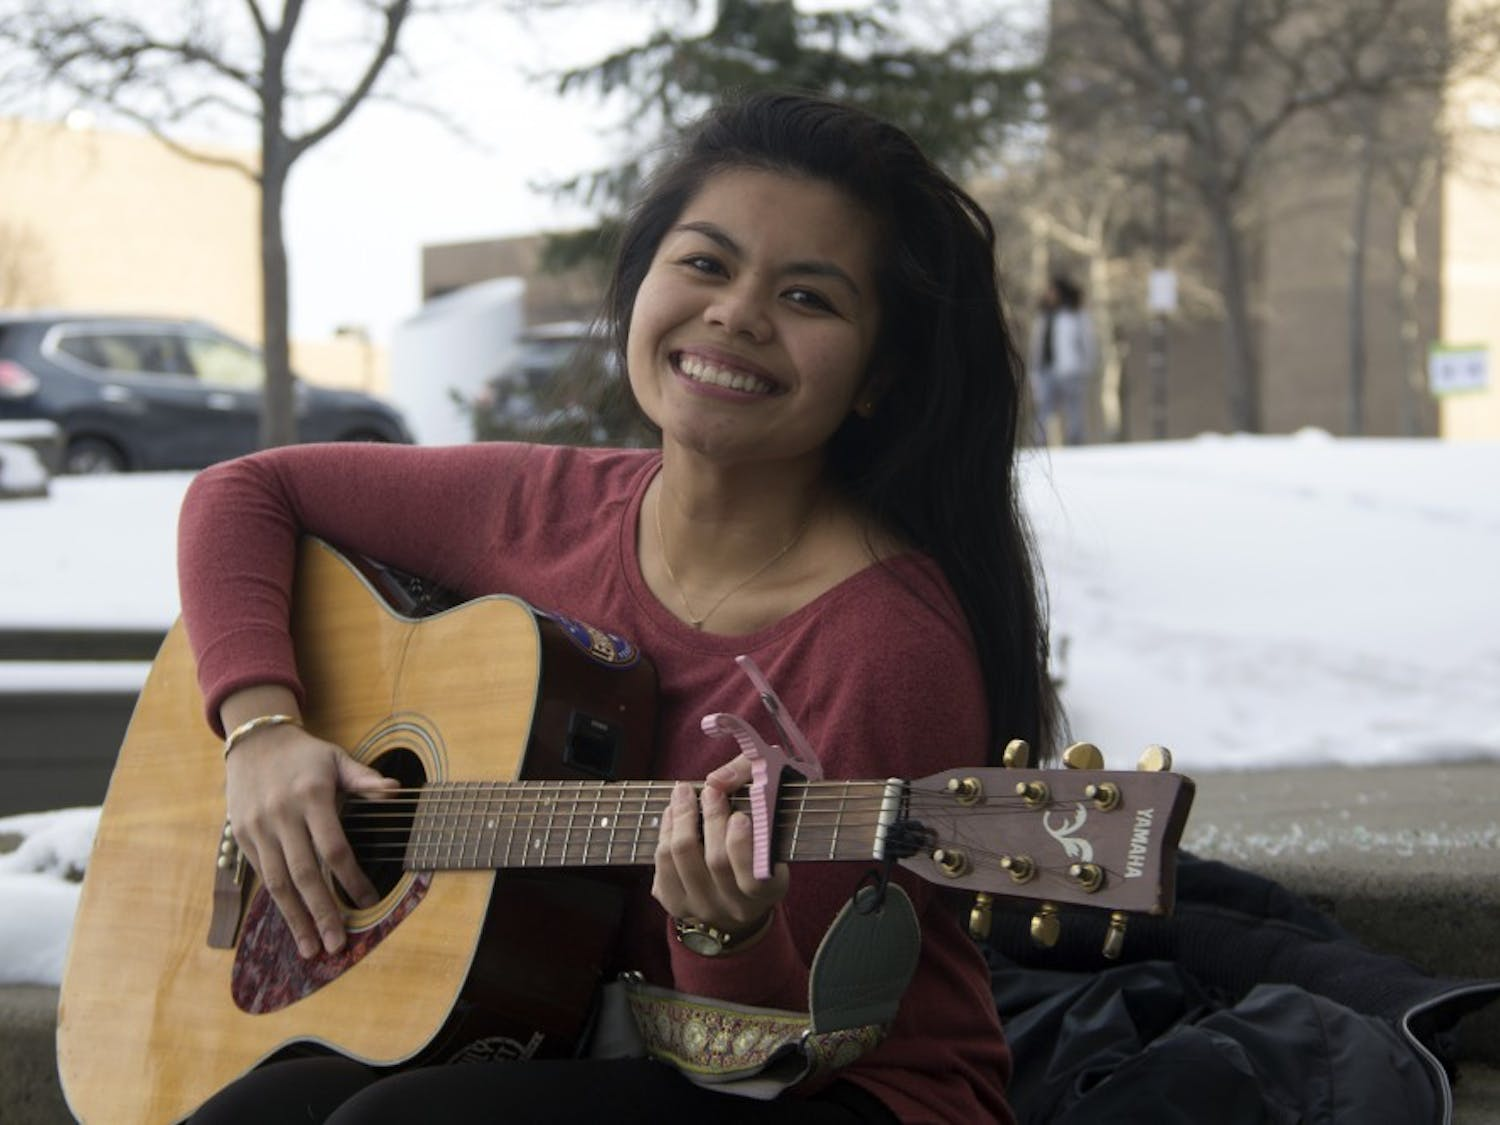 Accelerated nursing student Kari Quimpo makes songwriting lok easy and makes multitasking look even easier. Quimpo manages to play open mics around Buffalo and work through the Accelerated Baccalaureate Degree in Nursing (ABS) Program, all while inspiring her peers.